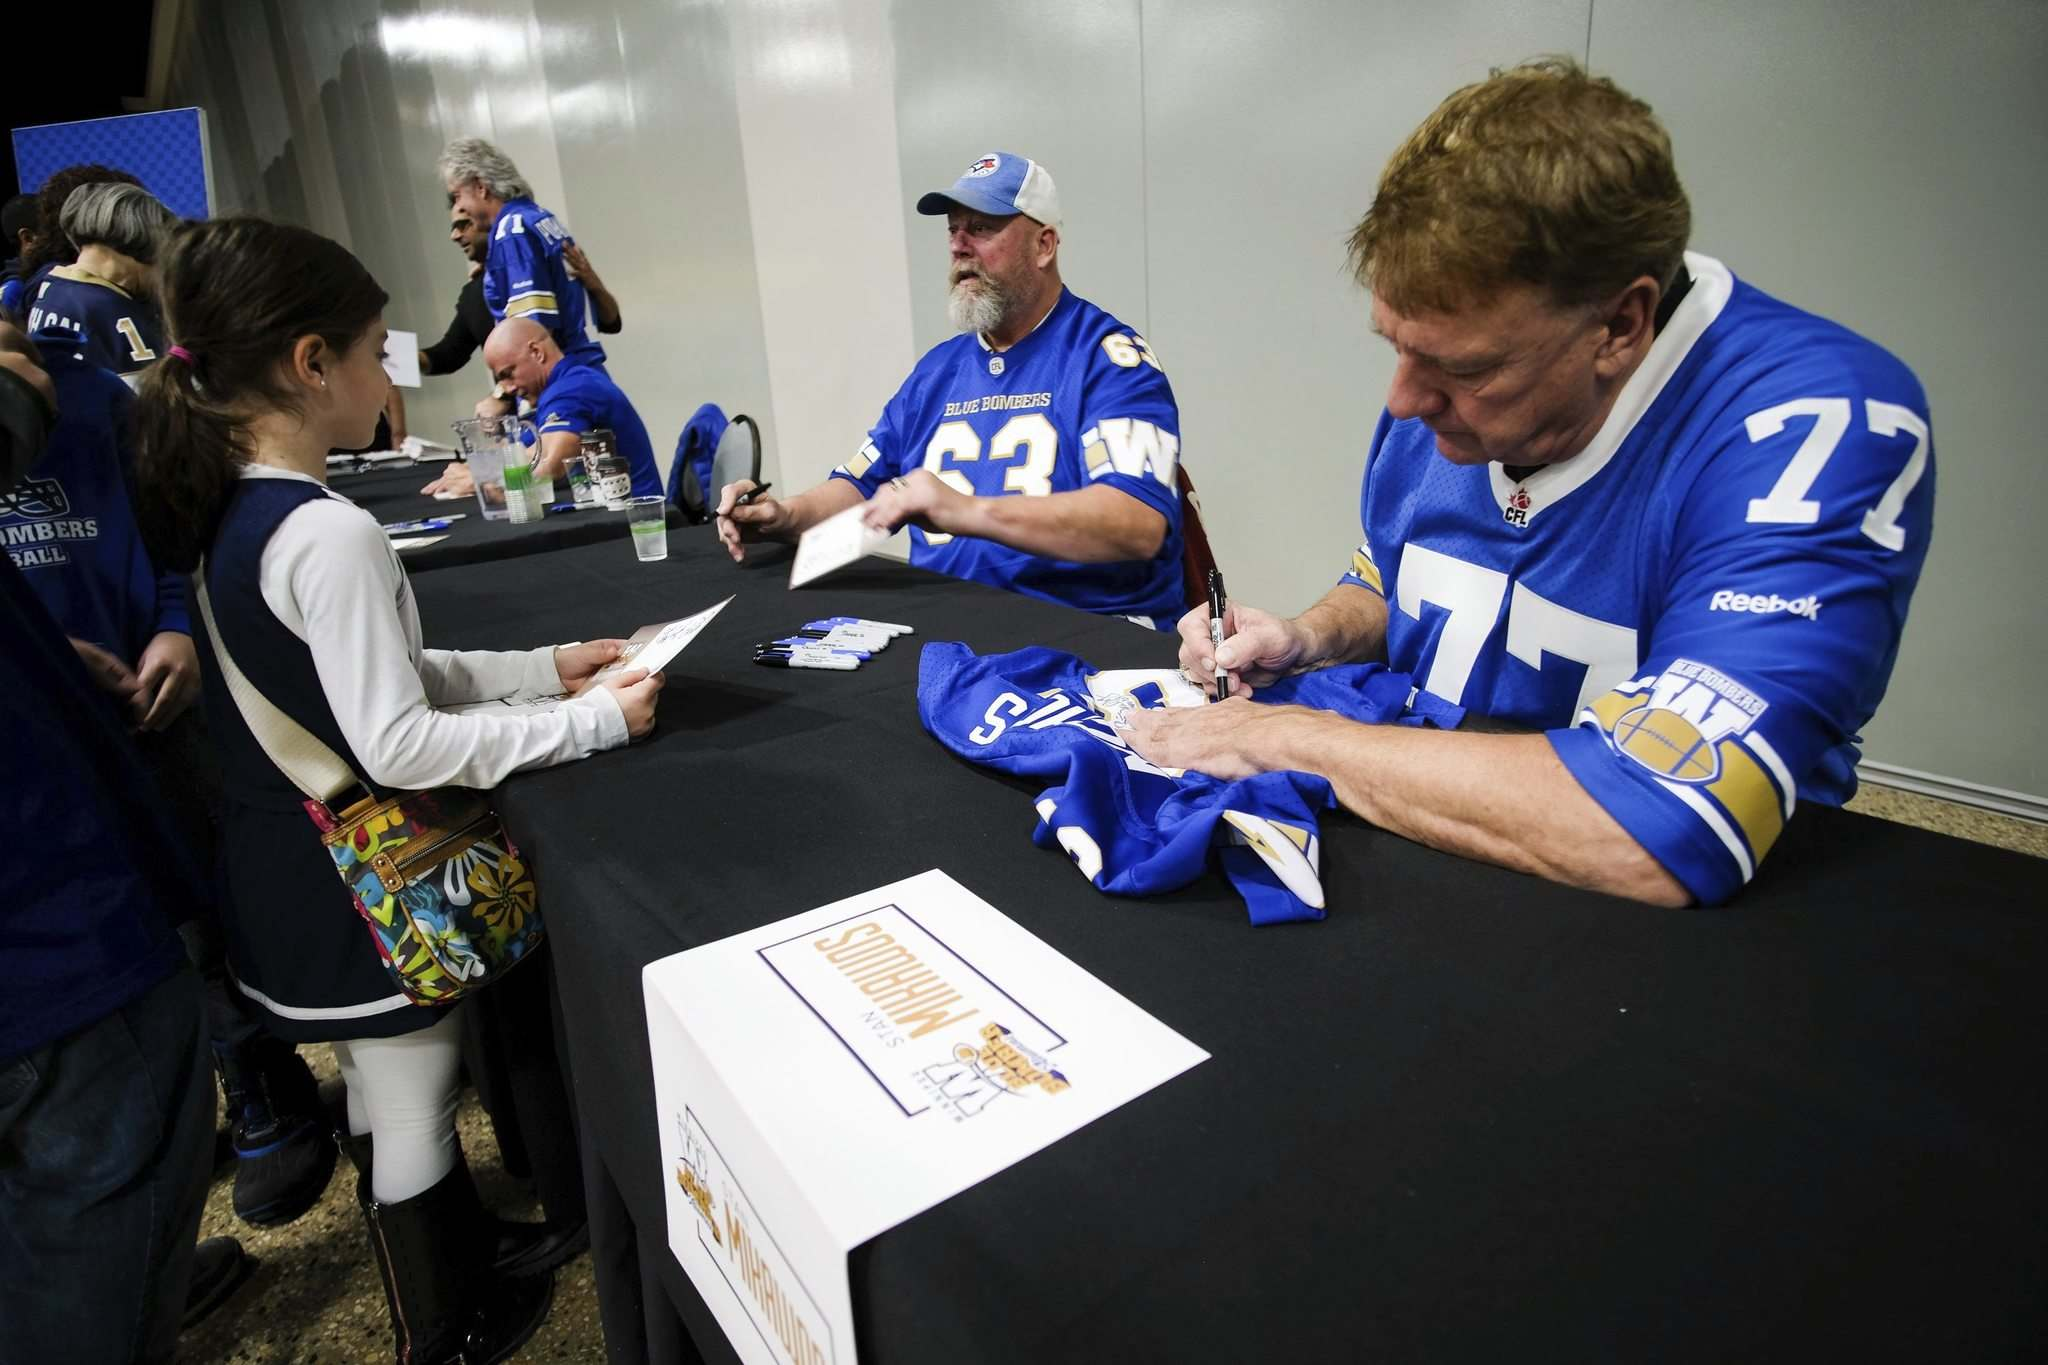 Winnipeg Blue Bomber alumni Chris Walby (left) and Stan Mikawos (right) sign autographs for fans Saturday at the convention centre. (Daniel Crump / Winnipeg Free Press)</p>